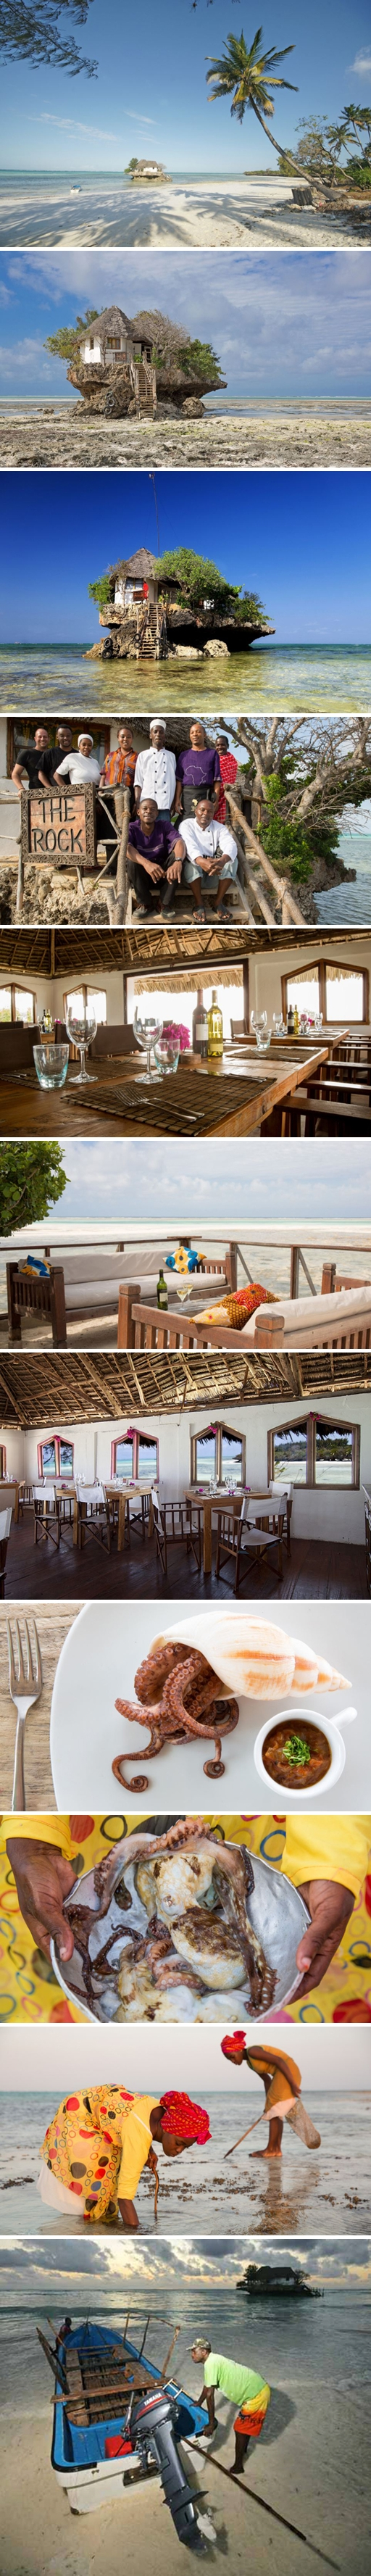 Beautiful The rock restaurant zanzibar